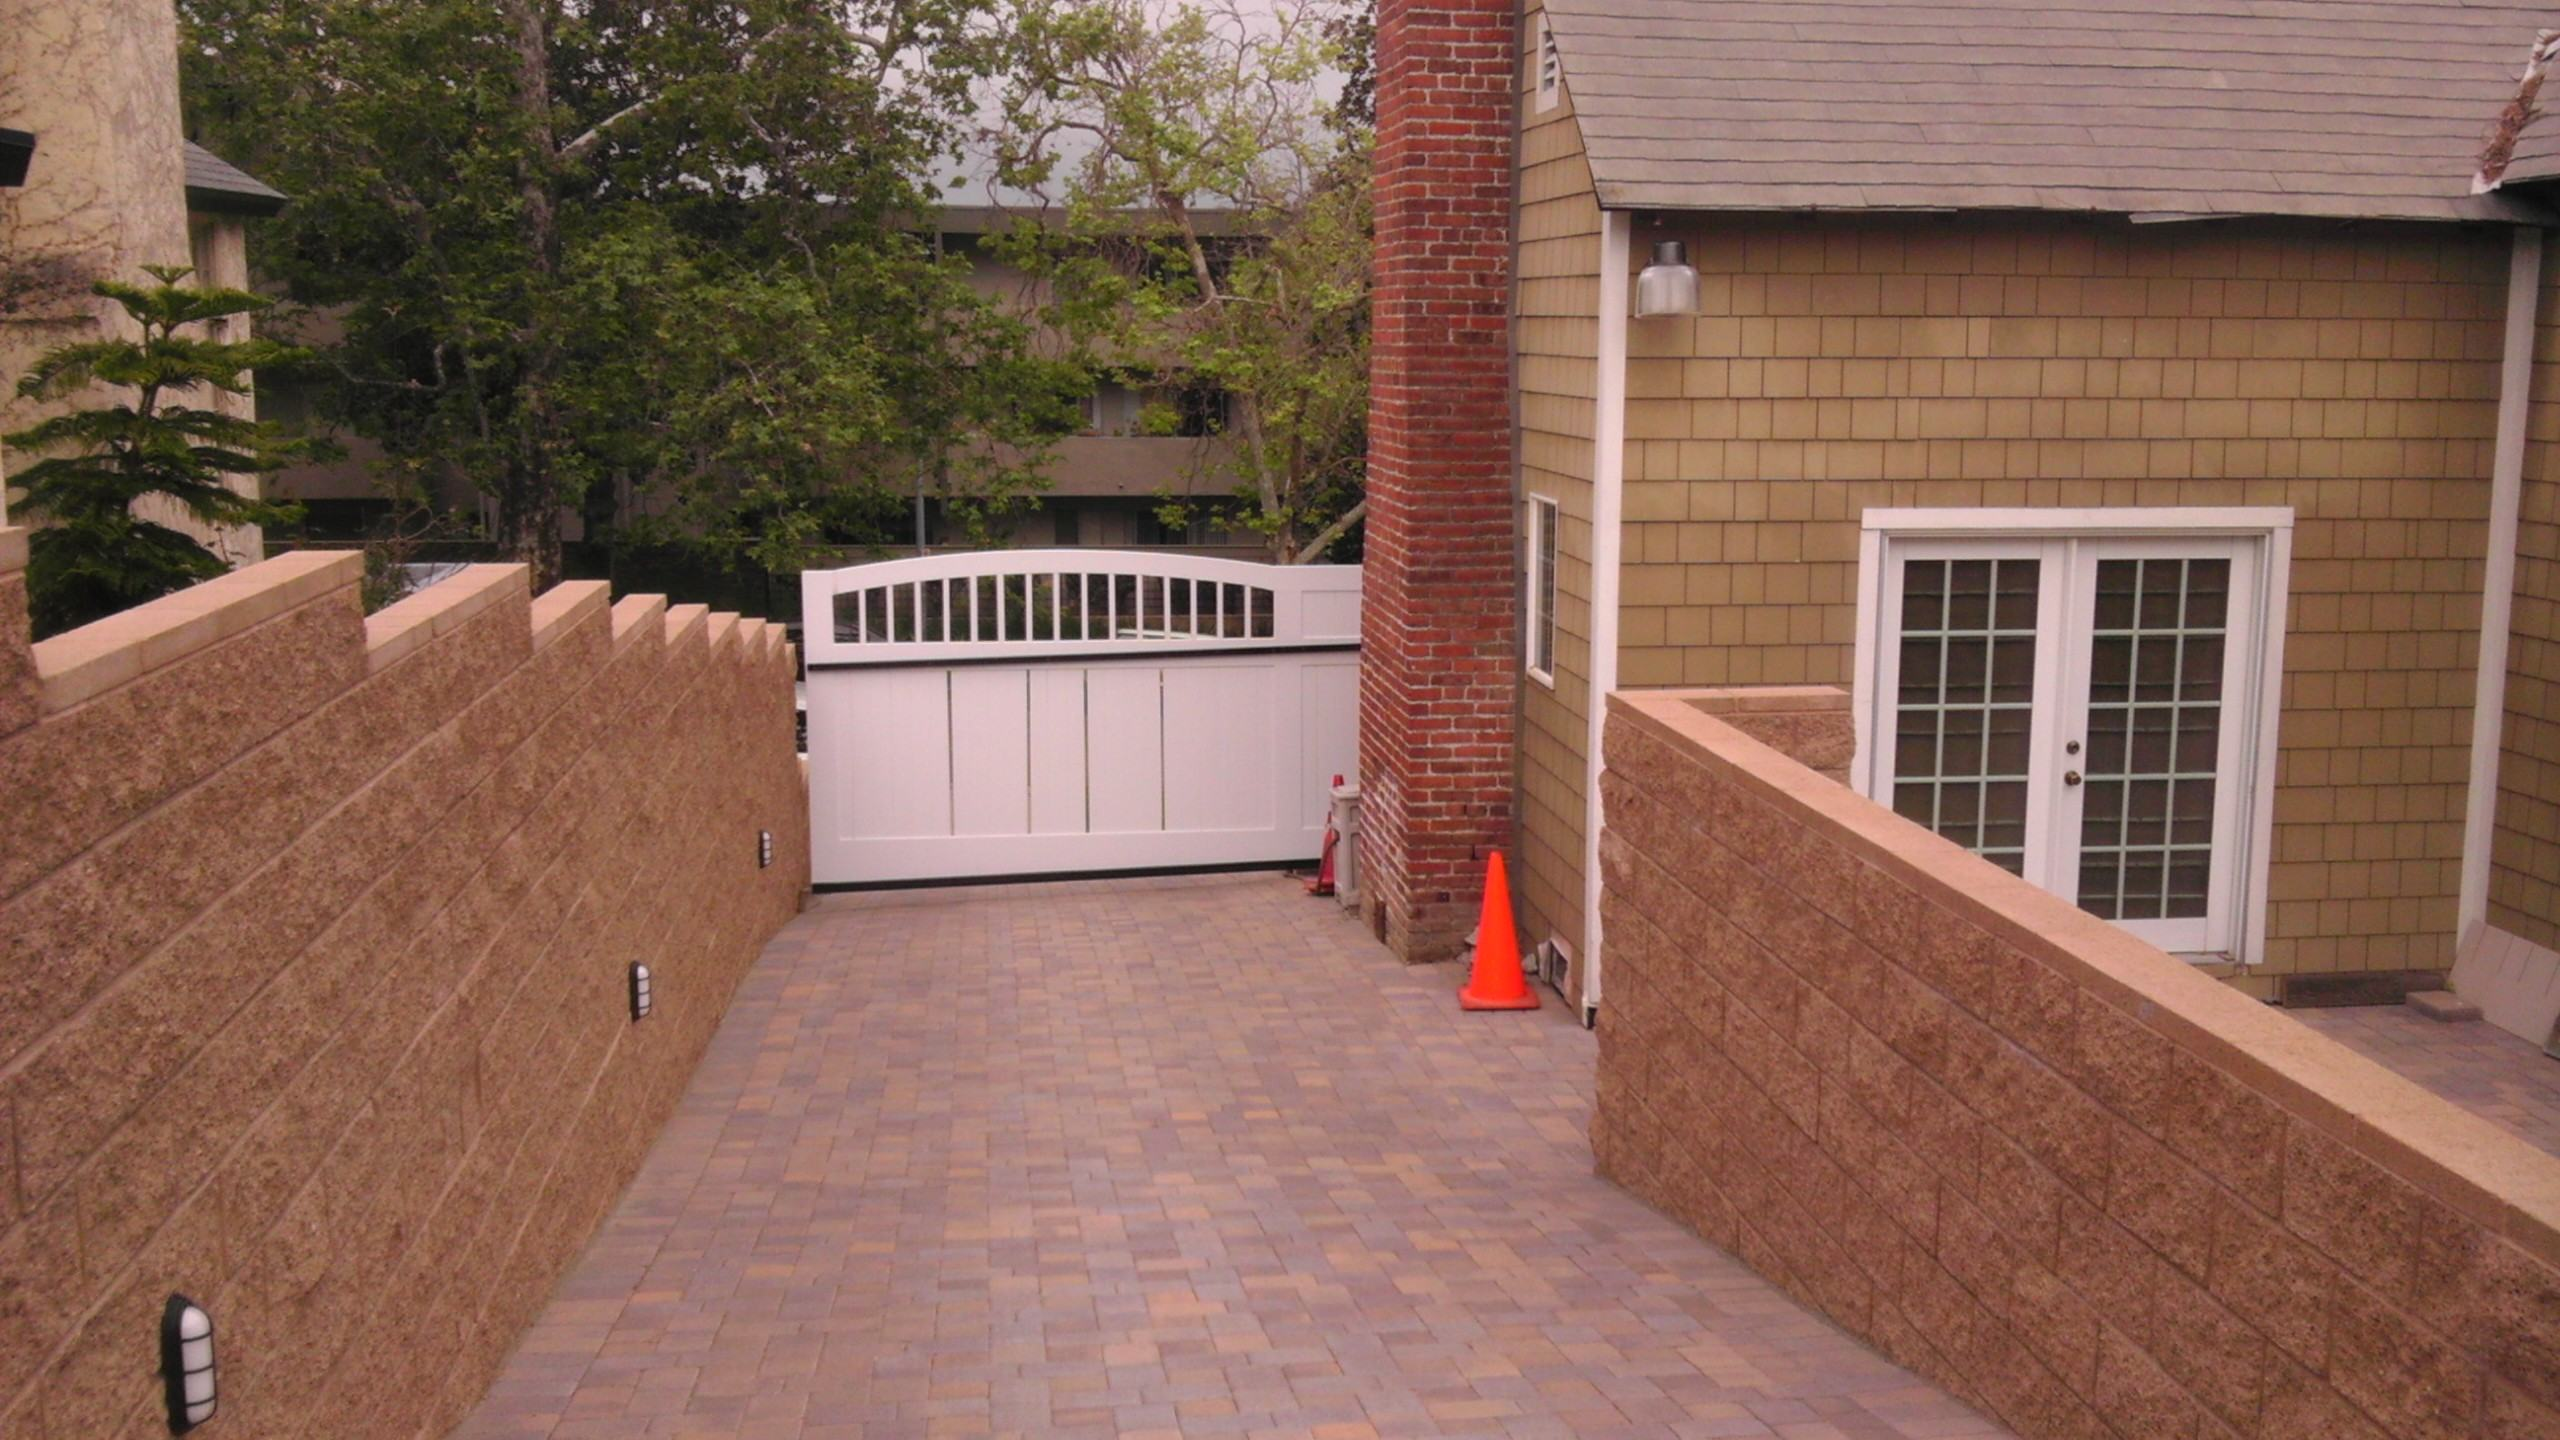 Private Residence In California Duragates The One Stop